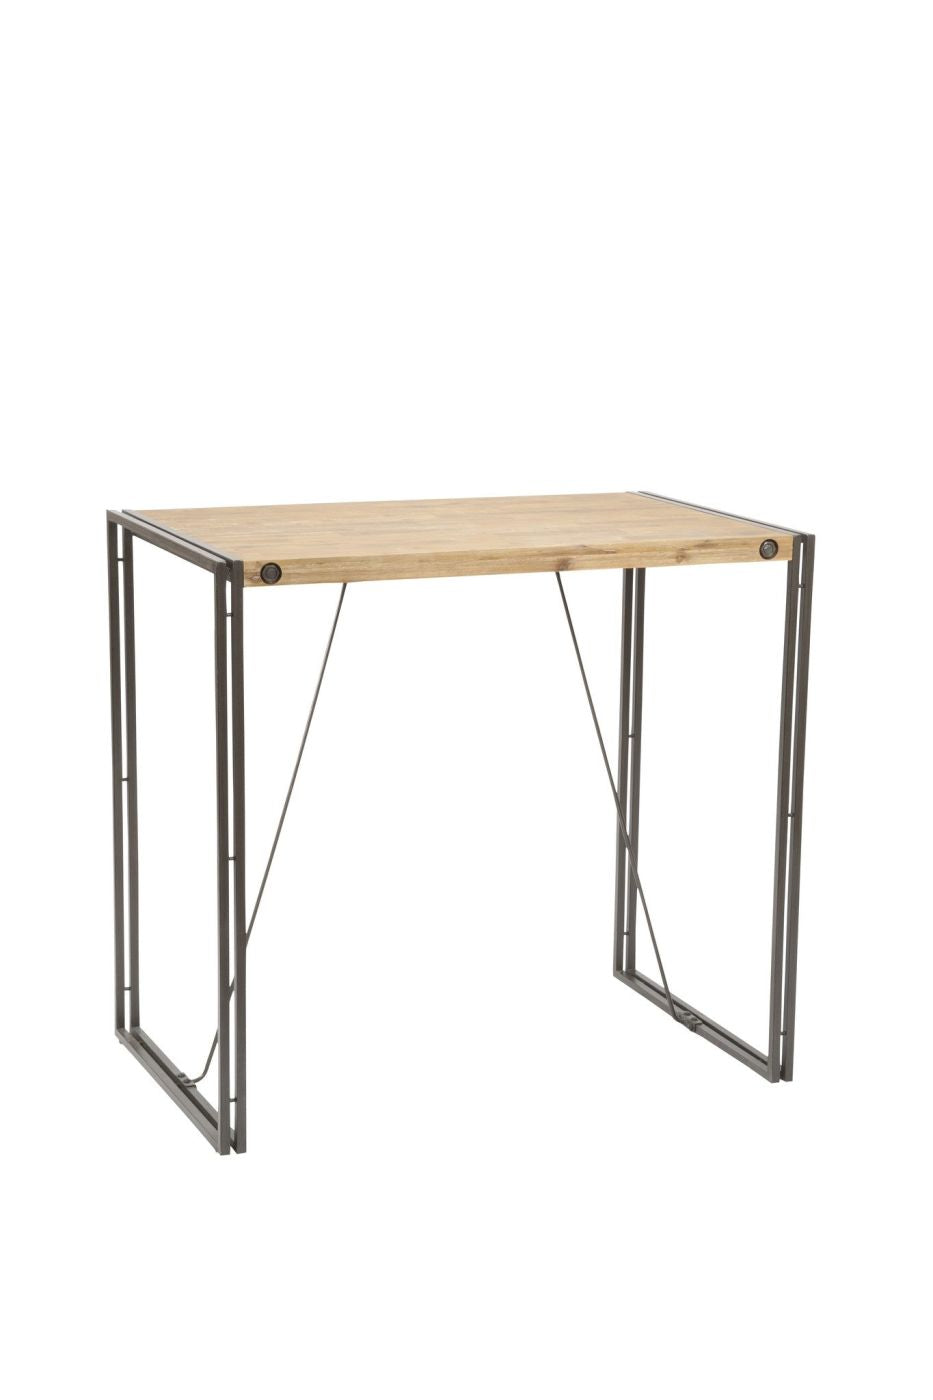 Brooklyn bar table acacia wood powder coated steel touch to zoom